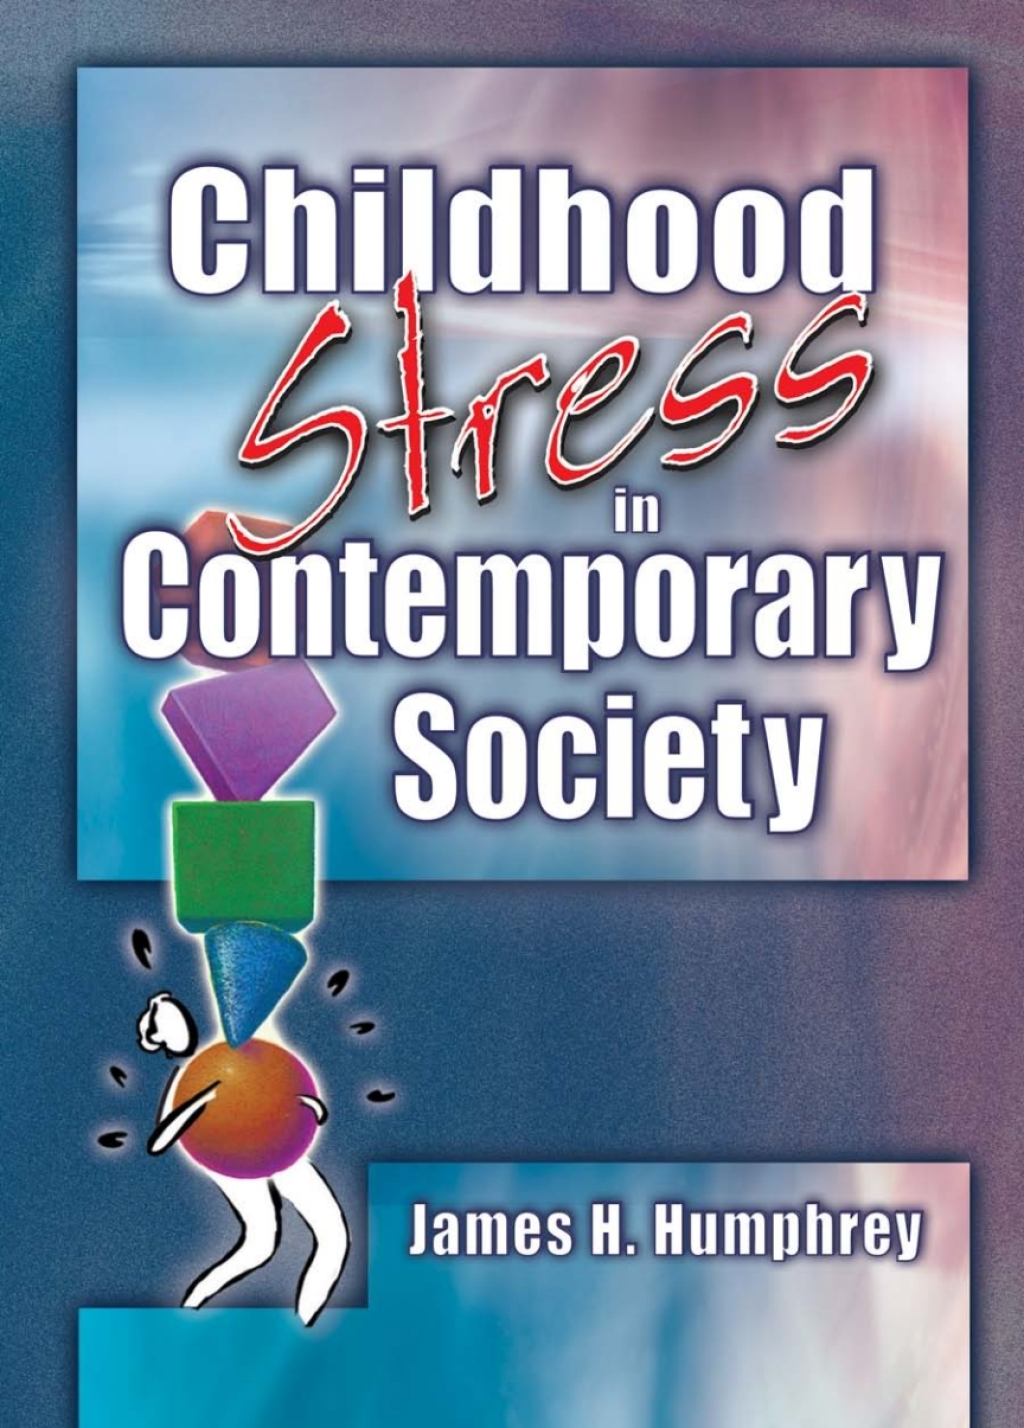 Childhood Stress in Contemporary Society (eBook Rental)